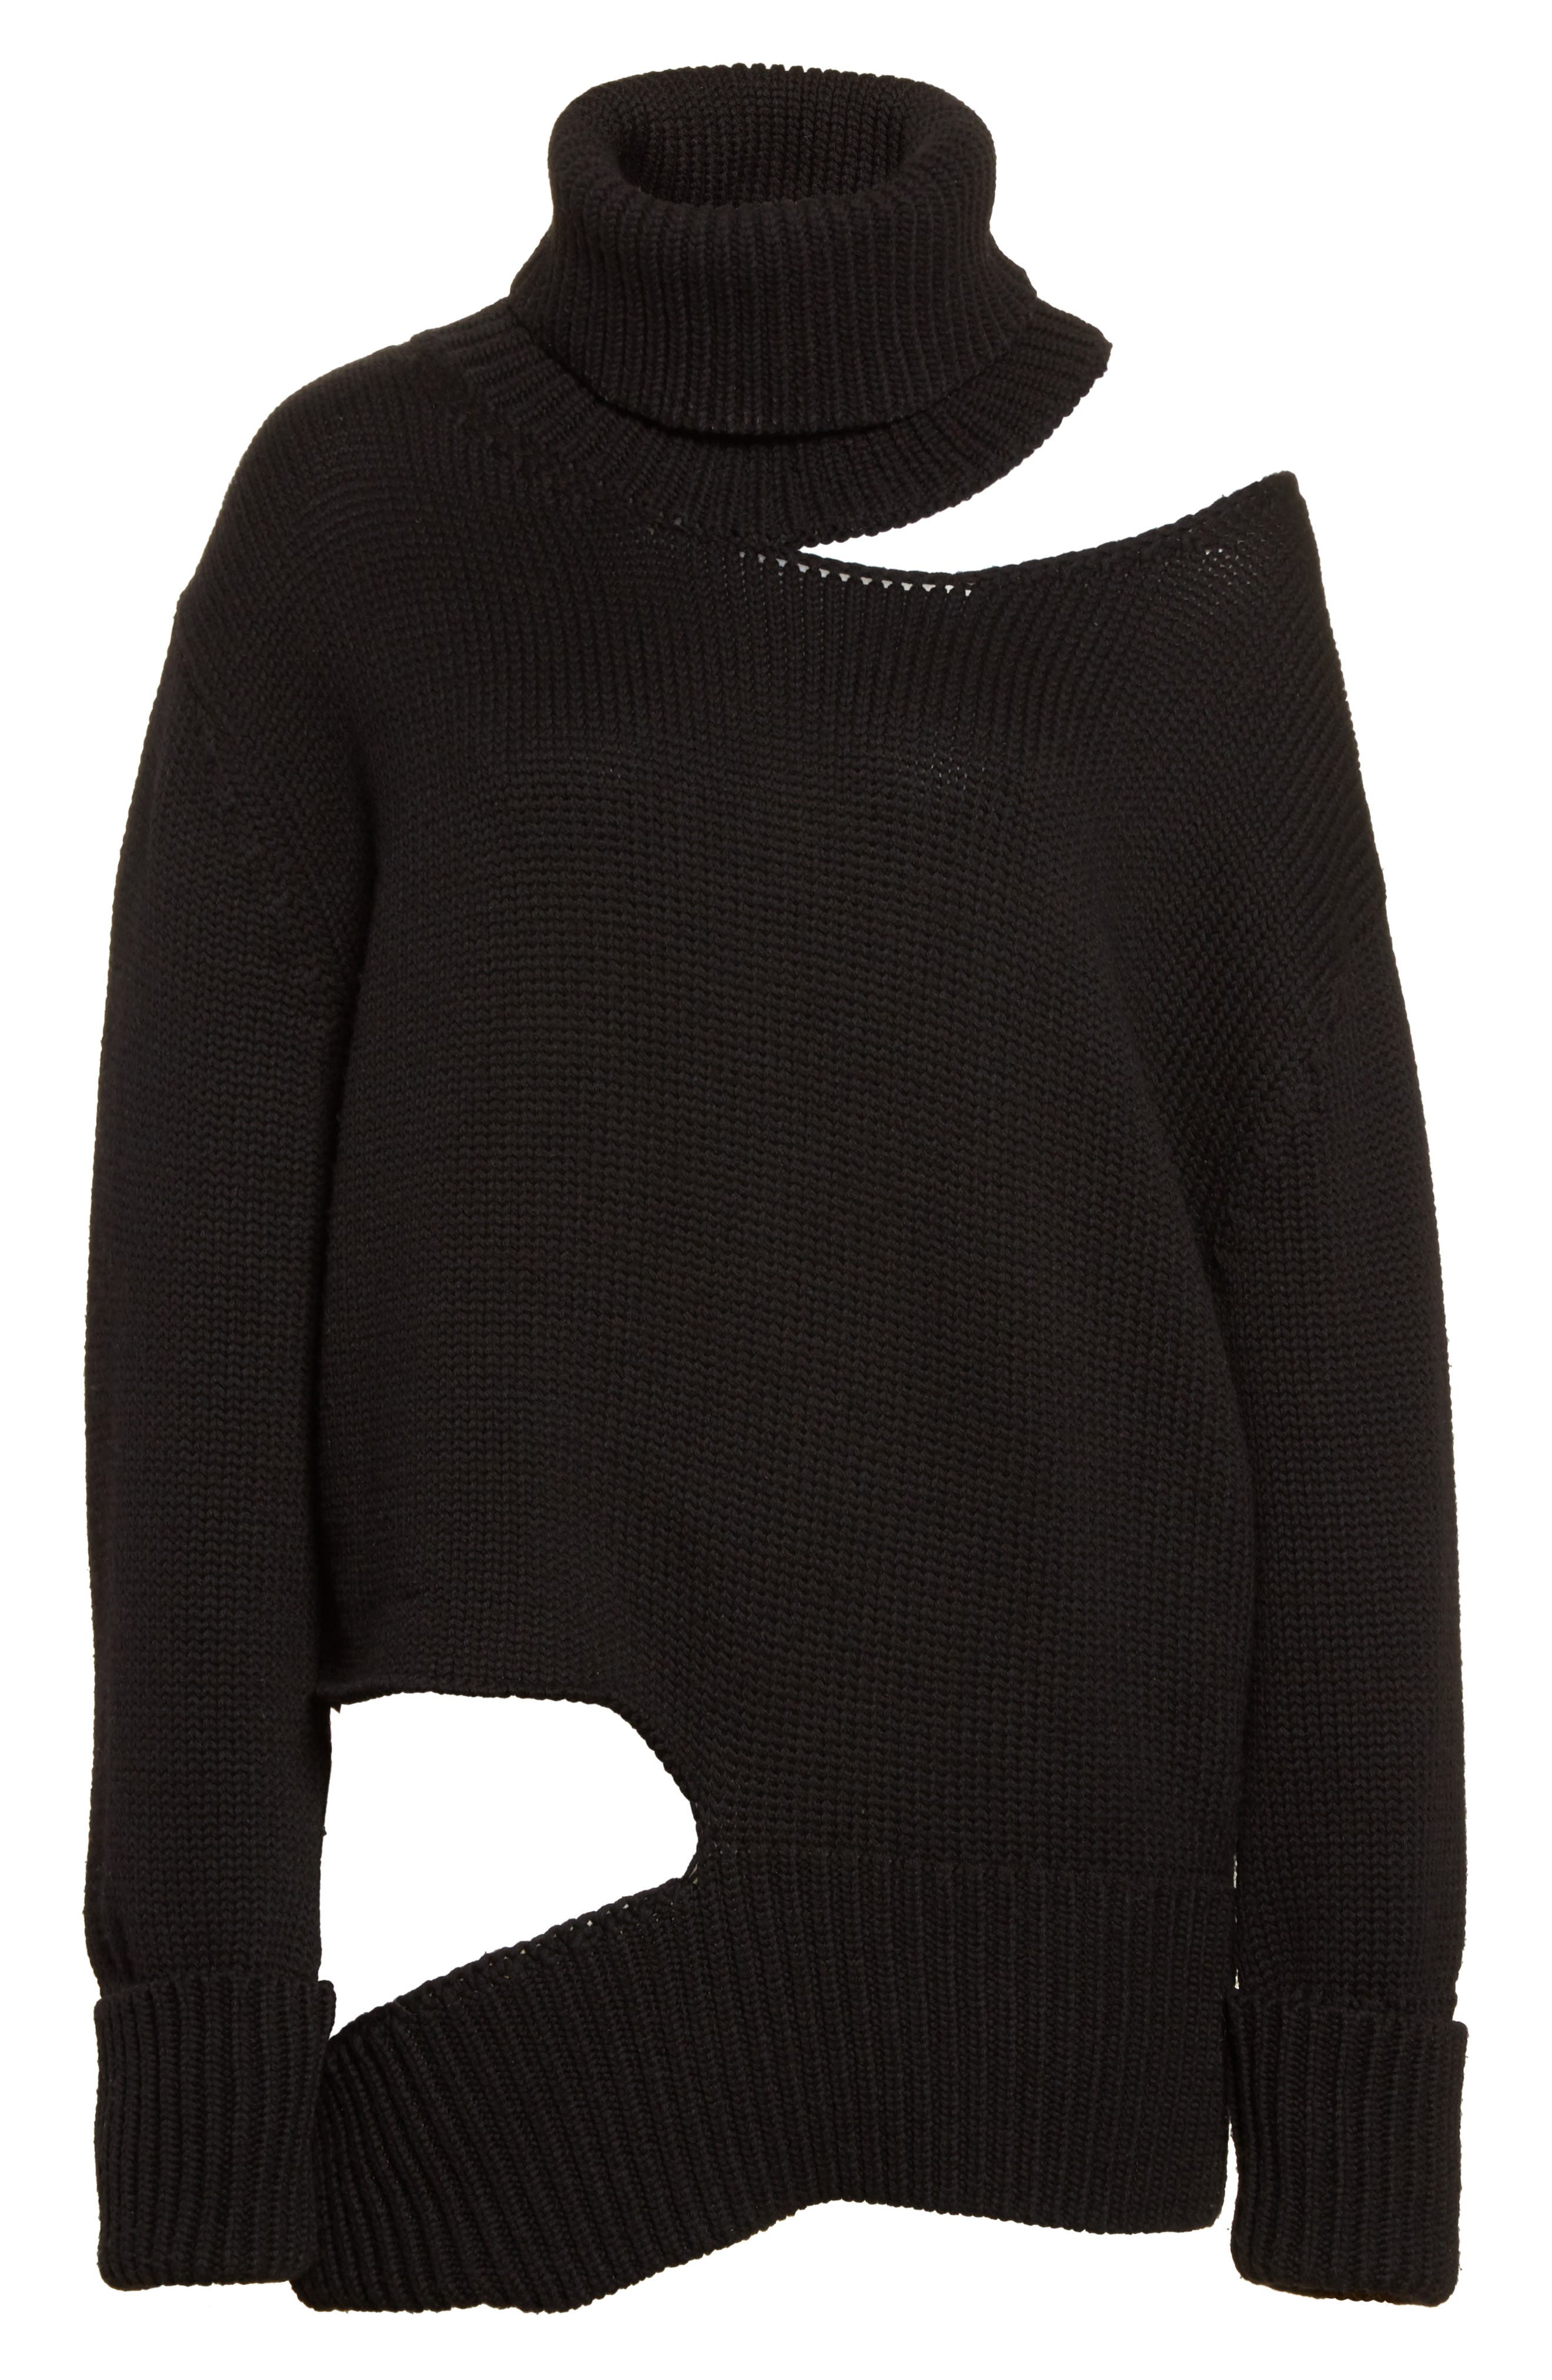 Asymmetrical Cutout Turtleneck Sweater,                             Alternate thumbnail 7, color,                             Black